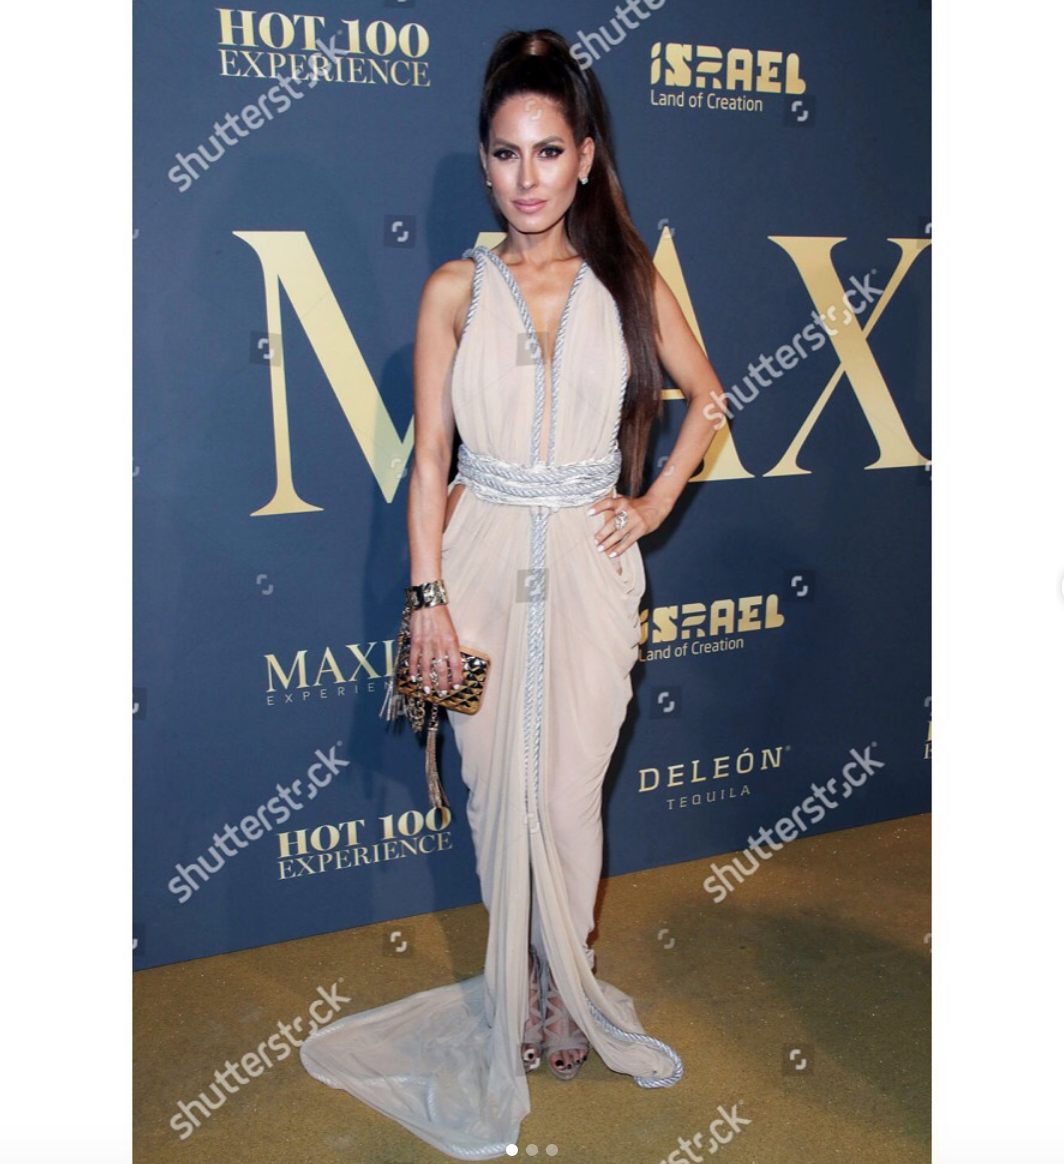 Spotted! Gorgeous hollywood tv and radio presenter icon and daughter of legendary radio host  #caseykasem  strikes the  @maximmag  #hot100  red carpet wearing our designers  @deviantlavie   @laureldewitt  @sambacjewelry  styled by  @leisastylediva fashion provided by  #ivanbittonstylehouse